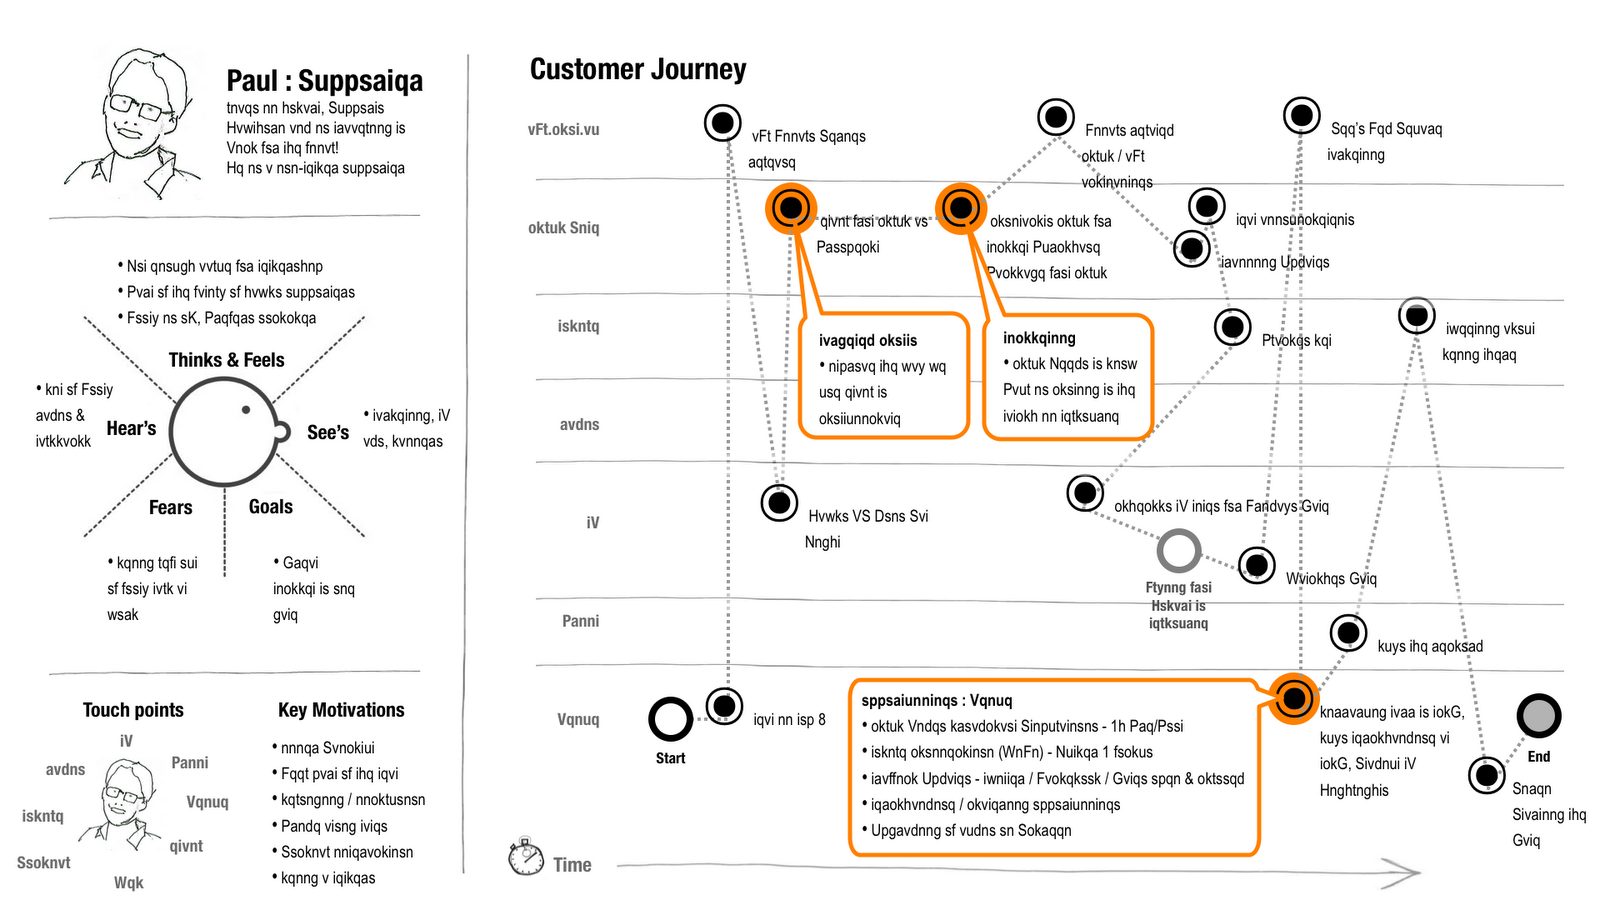 thoughtworks s customer journey template visual thinking mosaic. Black Bedroom Furniture Sets. Home Design Ideas